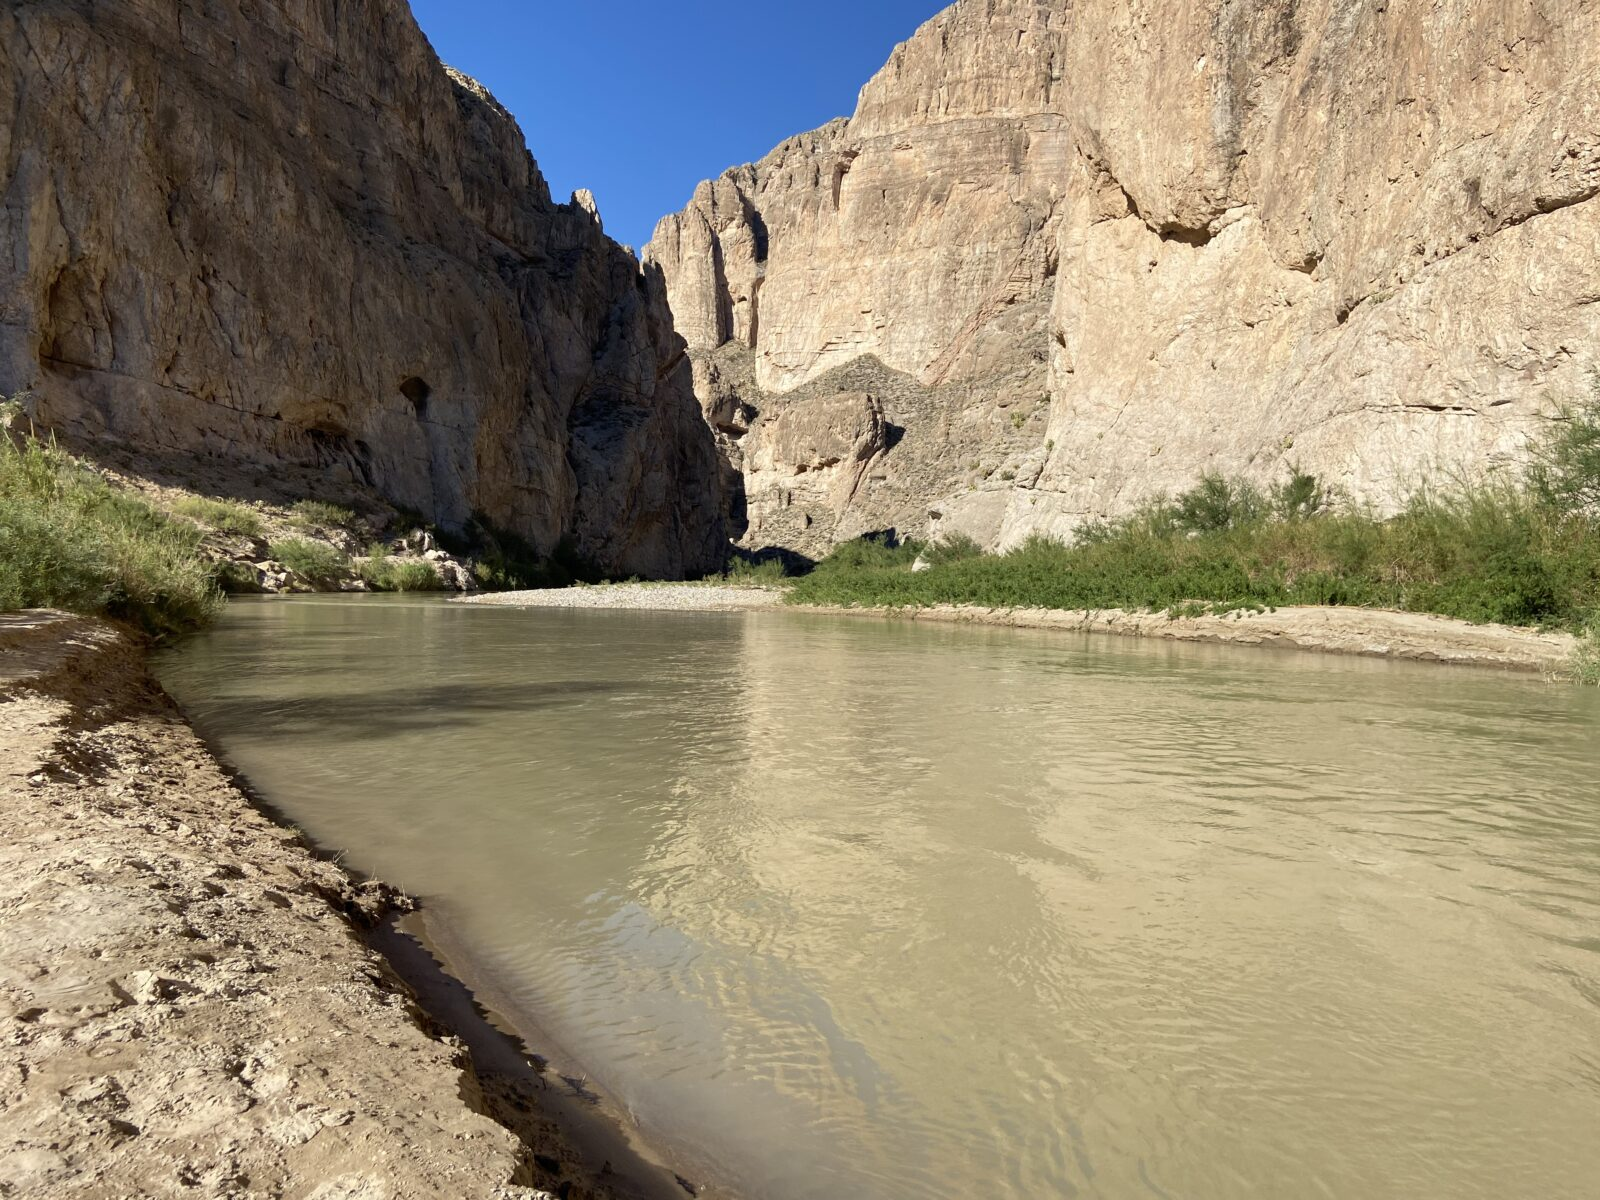 Boquillas Canyon at Big Bend National Park.